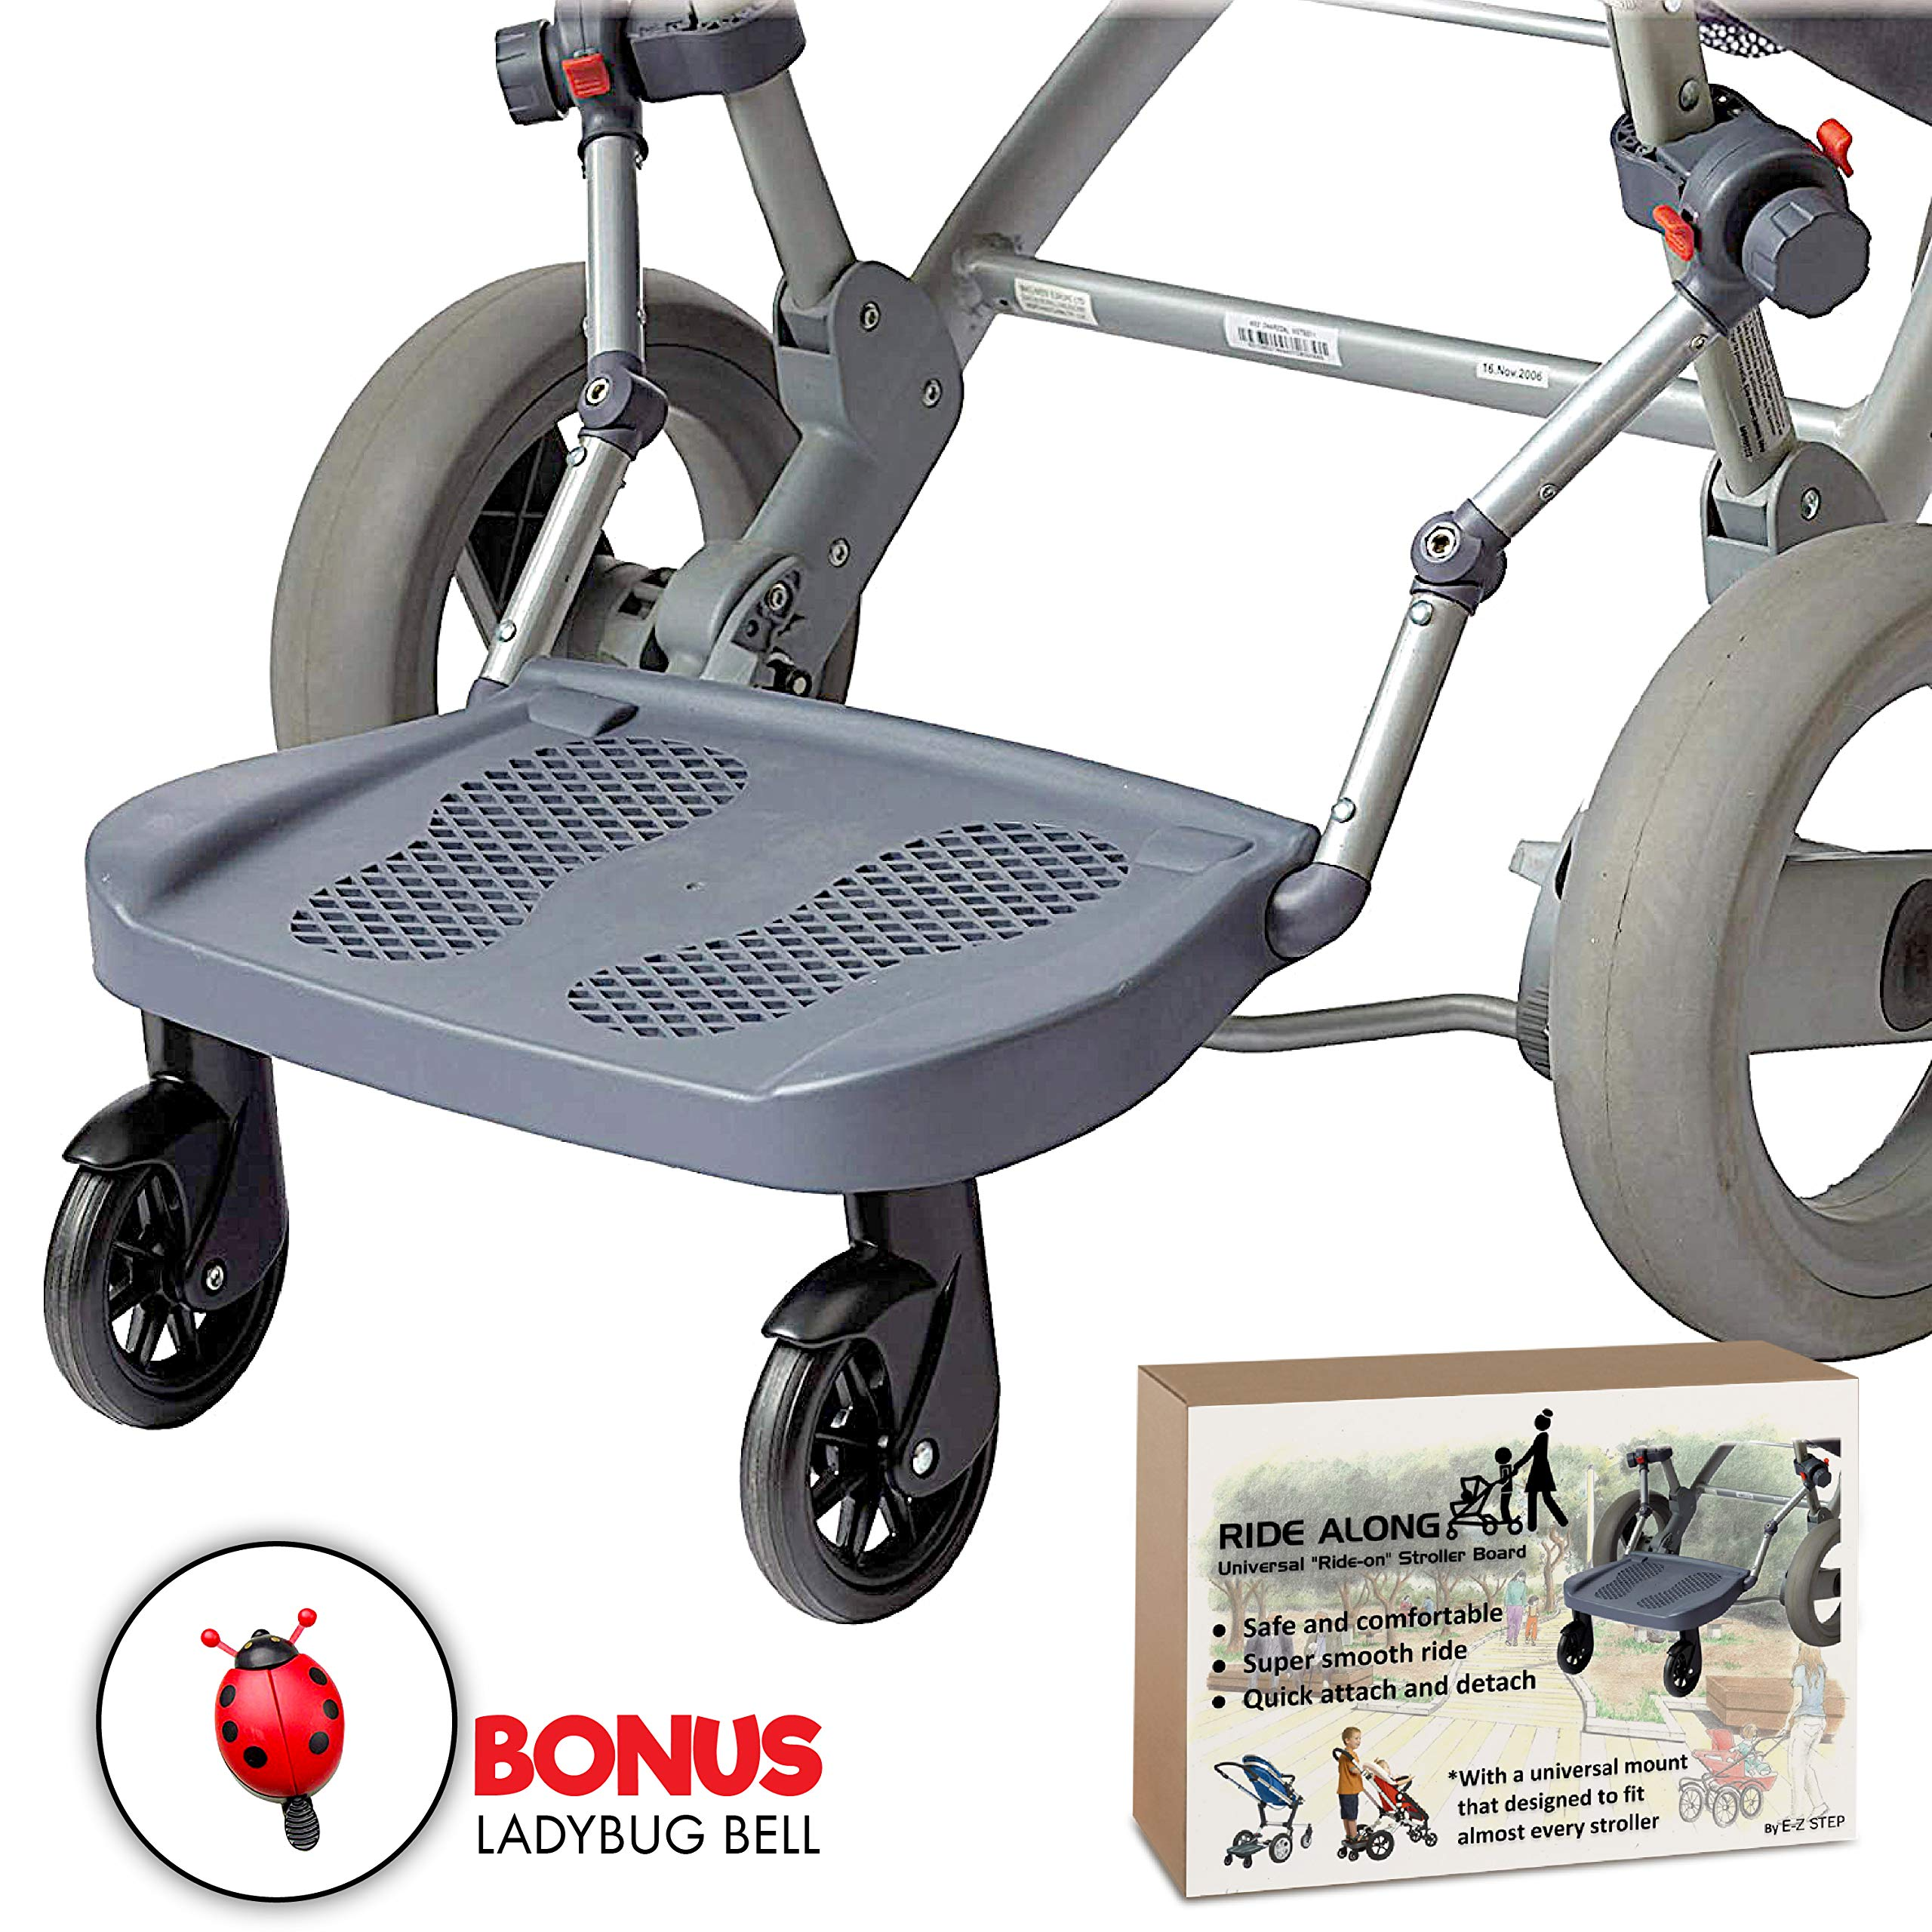 Ride Along - Universal Mount Ride-On Stroller Board Toddler Bump-Free Anti-Slip Buggy Stand by EZ step (Image #8)